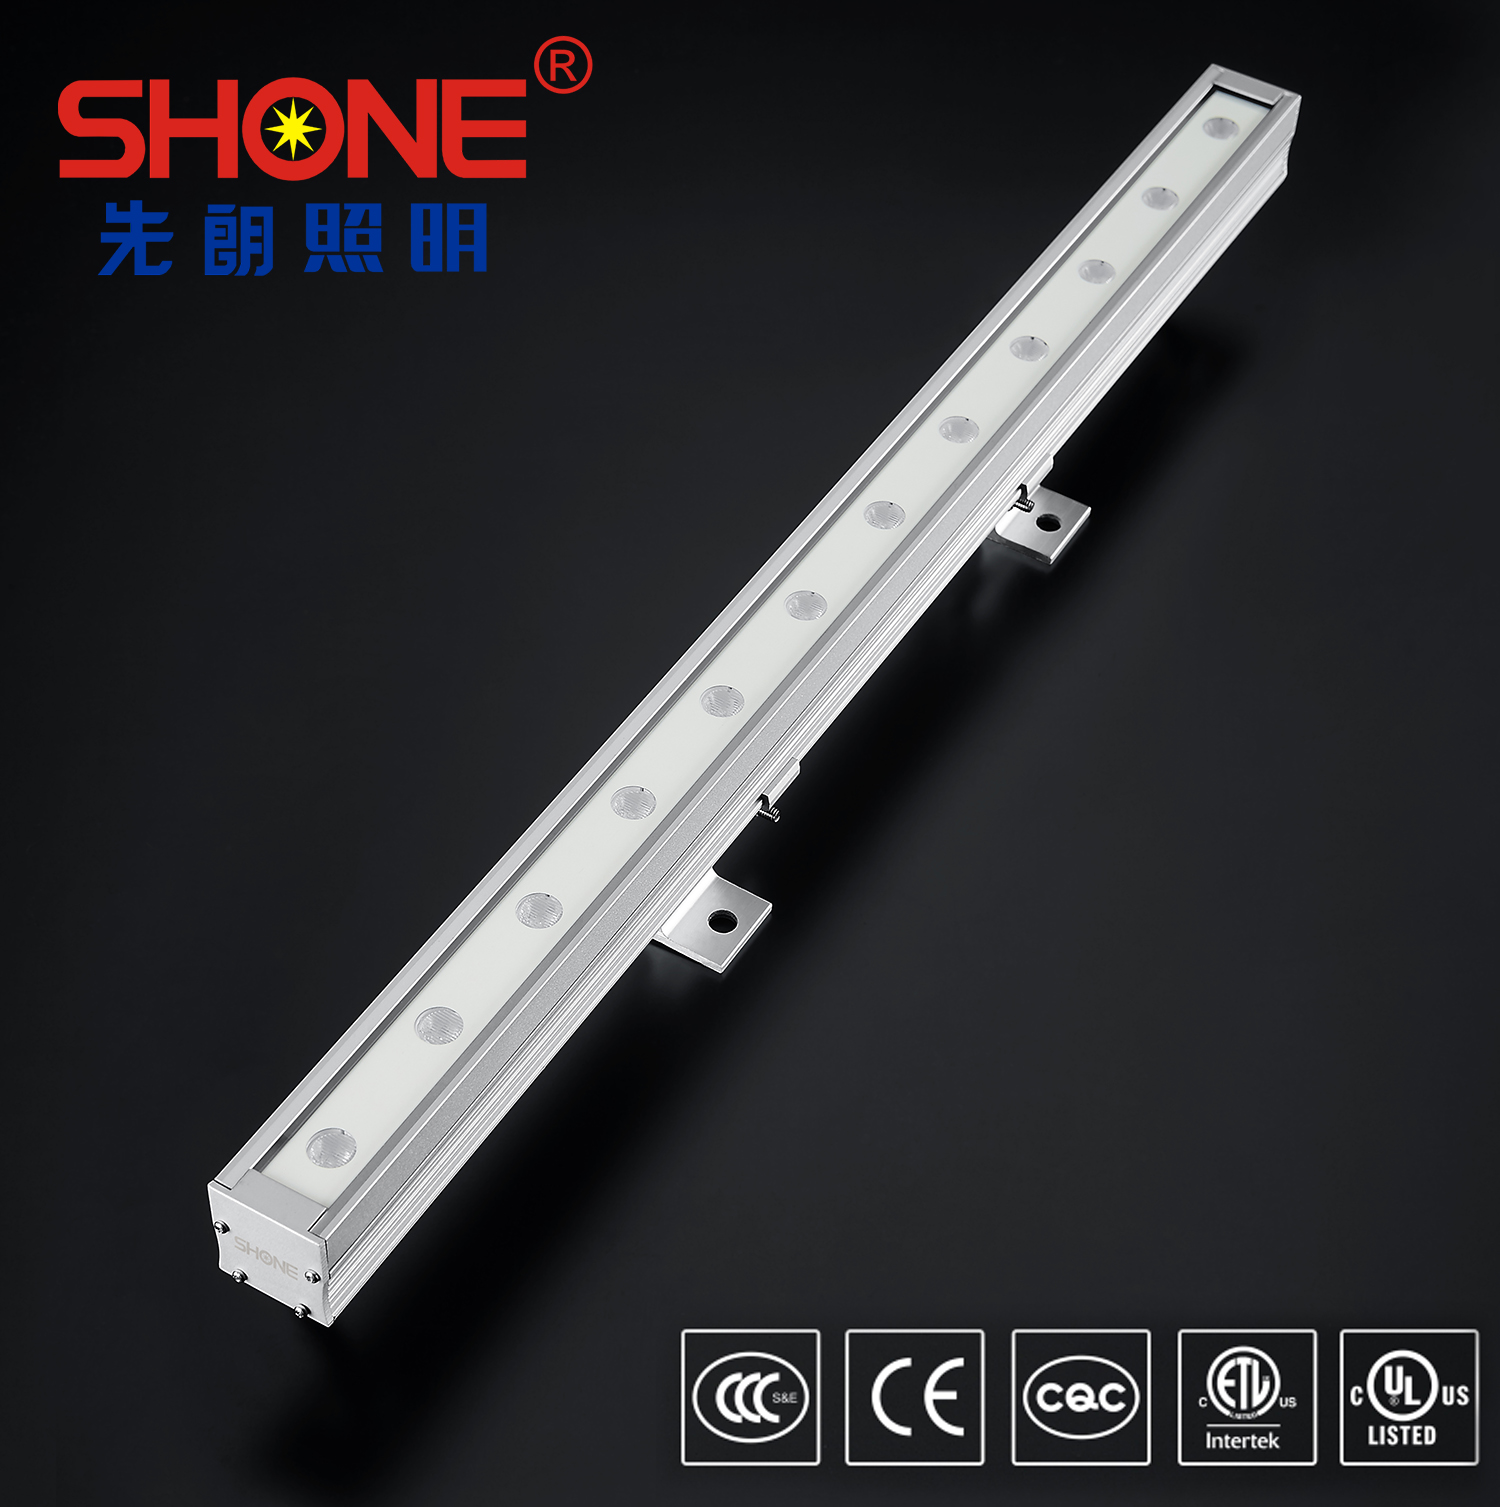 Shone Lighting 30x30 LED Linear Light Wall Washer with CE ETL Certificate IP66 for Outdoor Lightin